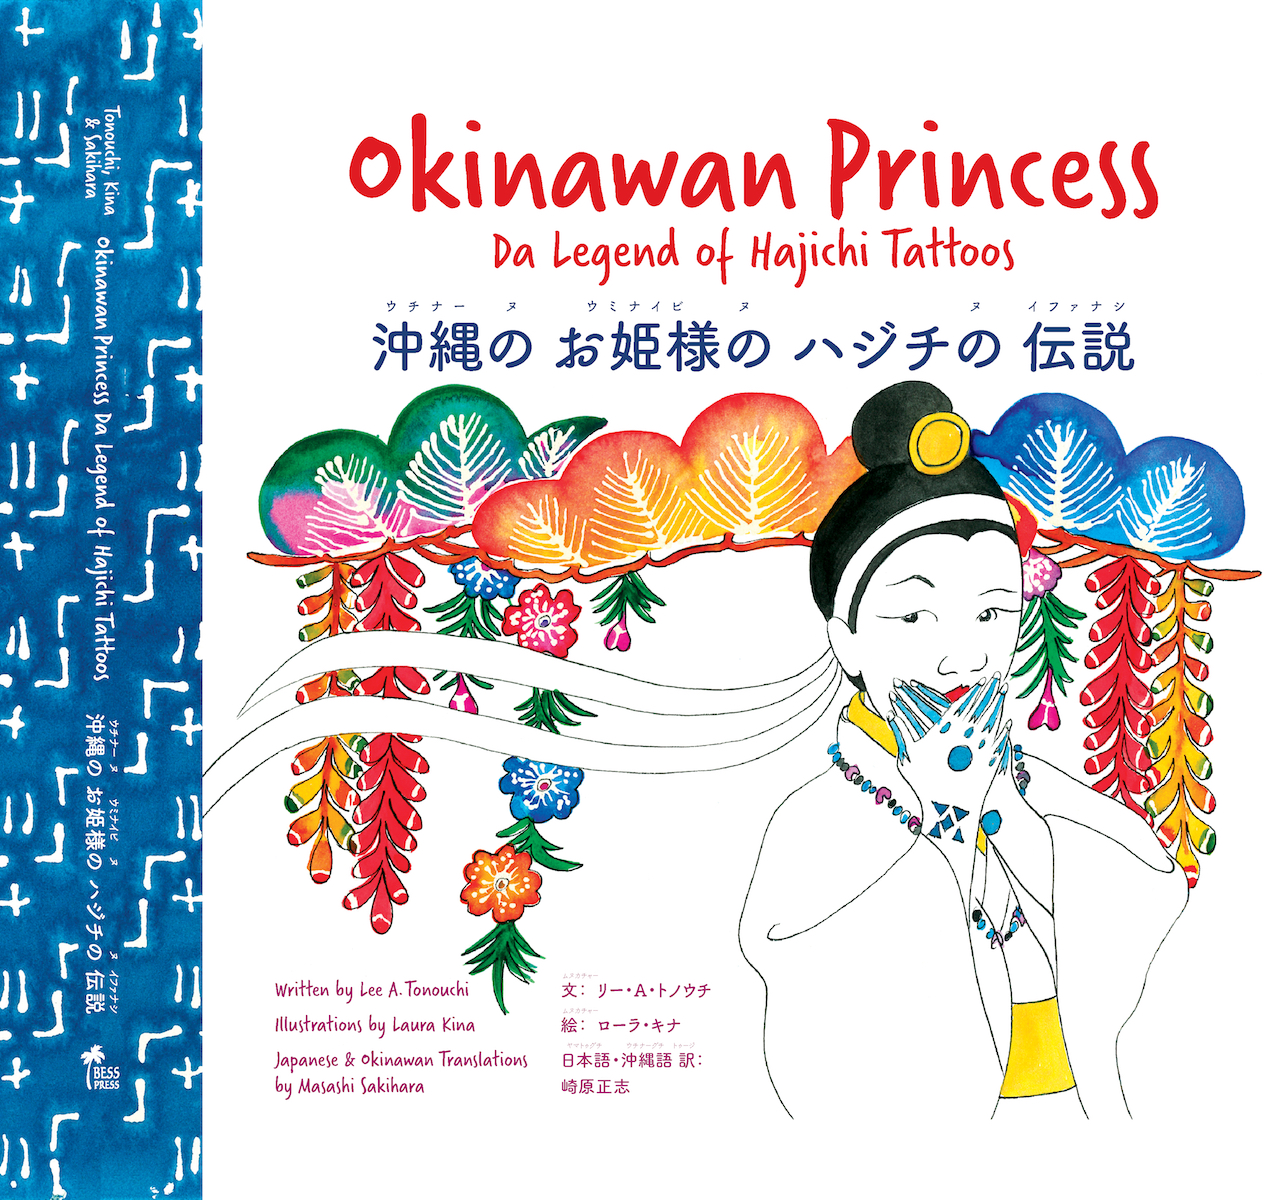 """Okinawan Princess - About this bookOkinawan Princess: Da Legend of Hajichi Tattoos is an illustrated, transpacific feminist fairy tale for all readers that illuminates an ancient tradition and pushes back against normative standards of beauty.When Gramma notices how much her granddaughter wishes she could look like a supermodel, Gramma shares how her own mother was made fun of when she moved to Hawai'i from Okinawa due to the bold blue hajichi tattoos on the back of her hands.Gramma then reveals the legend behind those mysterious markings. When the Okinawan Princess is kidnapped by Japanese pirates, will she wait for someone to save her or will she be able to outwit her captors? This trilingual story is written in Hawai'i Creole, then translated into Japanese and the endangered indigenous Okinawan language called Uchinaaguchi. """"Okinawan Princess"""" is part of ongoing efforts to revitalize Okinawan language, history and culture worldwide.written by Lee A. Tonouchiillustrated by Laura KinaJapanese & Okinawan translations by Masashi Sakiharadistributed by Bess Press Inc*author available for signings and presentations$18.95hardcover, color 48pp, 11"""" x 10"""" ISBN:978-1-57306-5320About the authorLee A. Tonouchi is a full Okinawan yonsei born and raised in Hawai'i. He is known as """"Da Pidgin Guerrilla"""" for his championing of Pidgin a.k.a Hawai'i Creole to be accepted as a legitimate language. His last book, Significant Moments in da Life of Oriental Faddah and Son: One Hawai'i Okinawan Journal, published by Bess Press, won the Association for Asian American Studies Book Award for Poetry/Prose.About the illustratorLaura Kina is a """"hapa, yonsei, Uchinanchu"""" artist and educator based in Chicago. Her artwork addresses Asian American and mixed race identities and histories with a focus on Okinawa and Hawai'i diasporas. She is a Vincent de Paul Professor of Art, Media, & Design at DePaul University and coeditor of War Baby/Love Child: Mixed Race Asian American Art (University of Wash"""